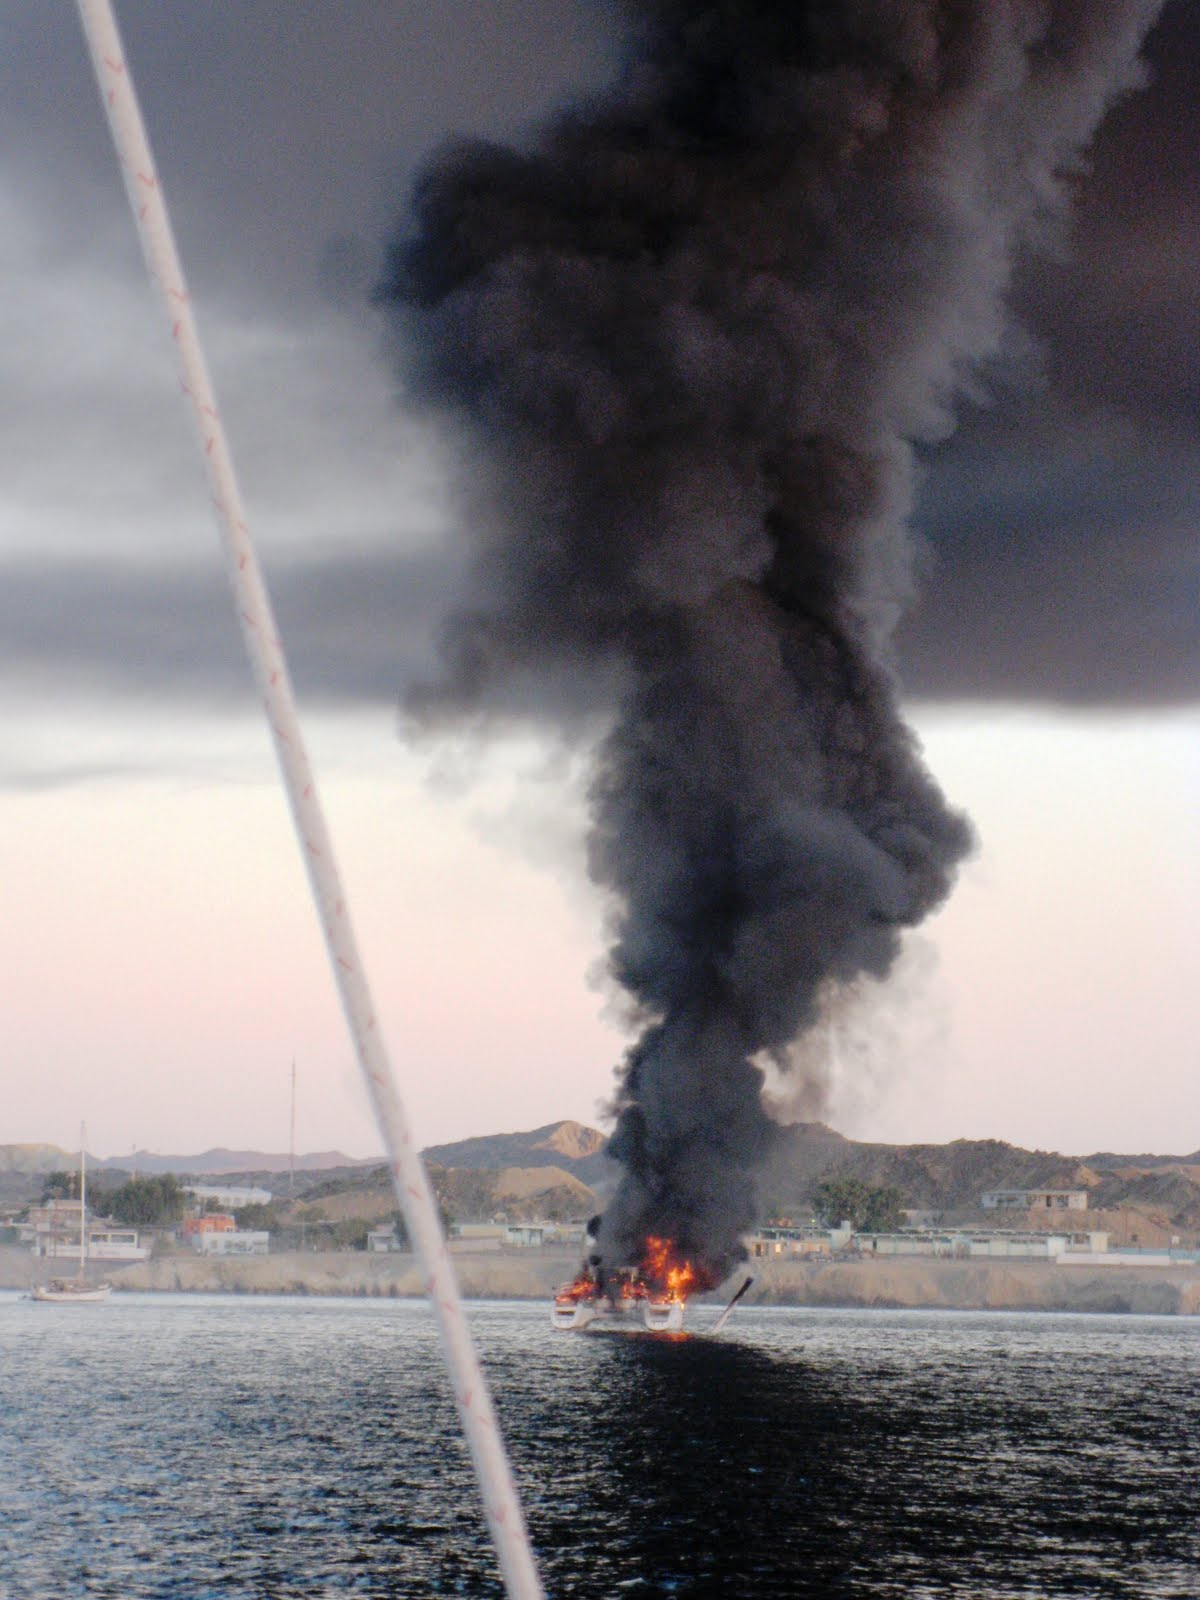 Click image for larger version  Name:boat-explosion20.JPG Views:180 Size:186.7 KB ID:97652